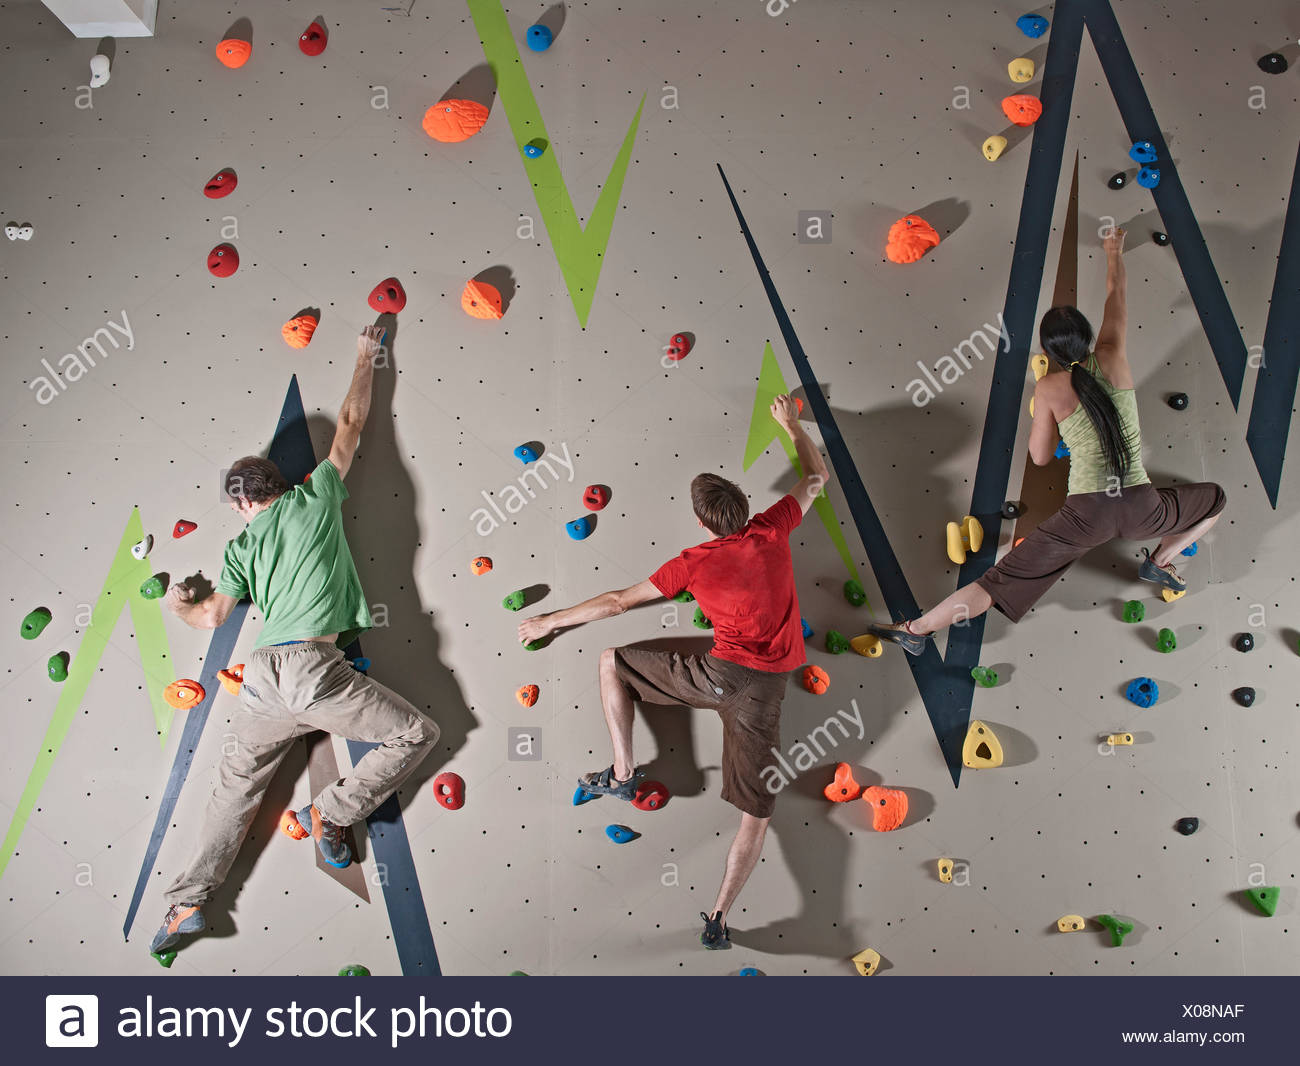 Three adults bouldering on climbing wall - Stock Image